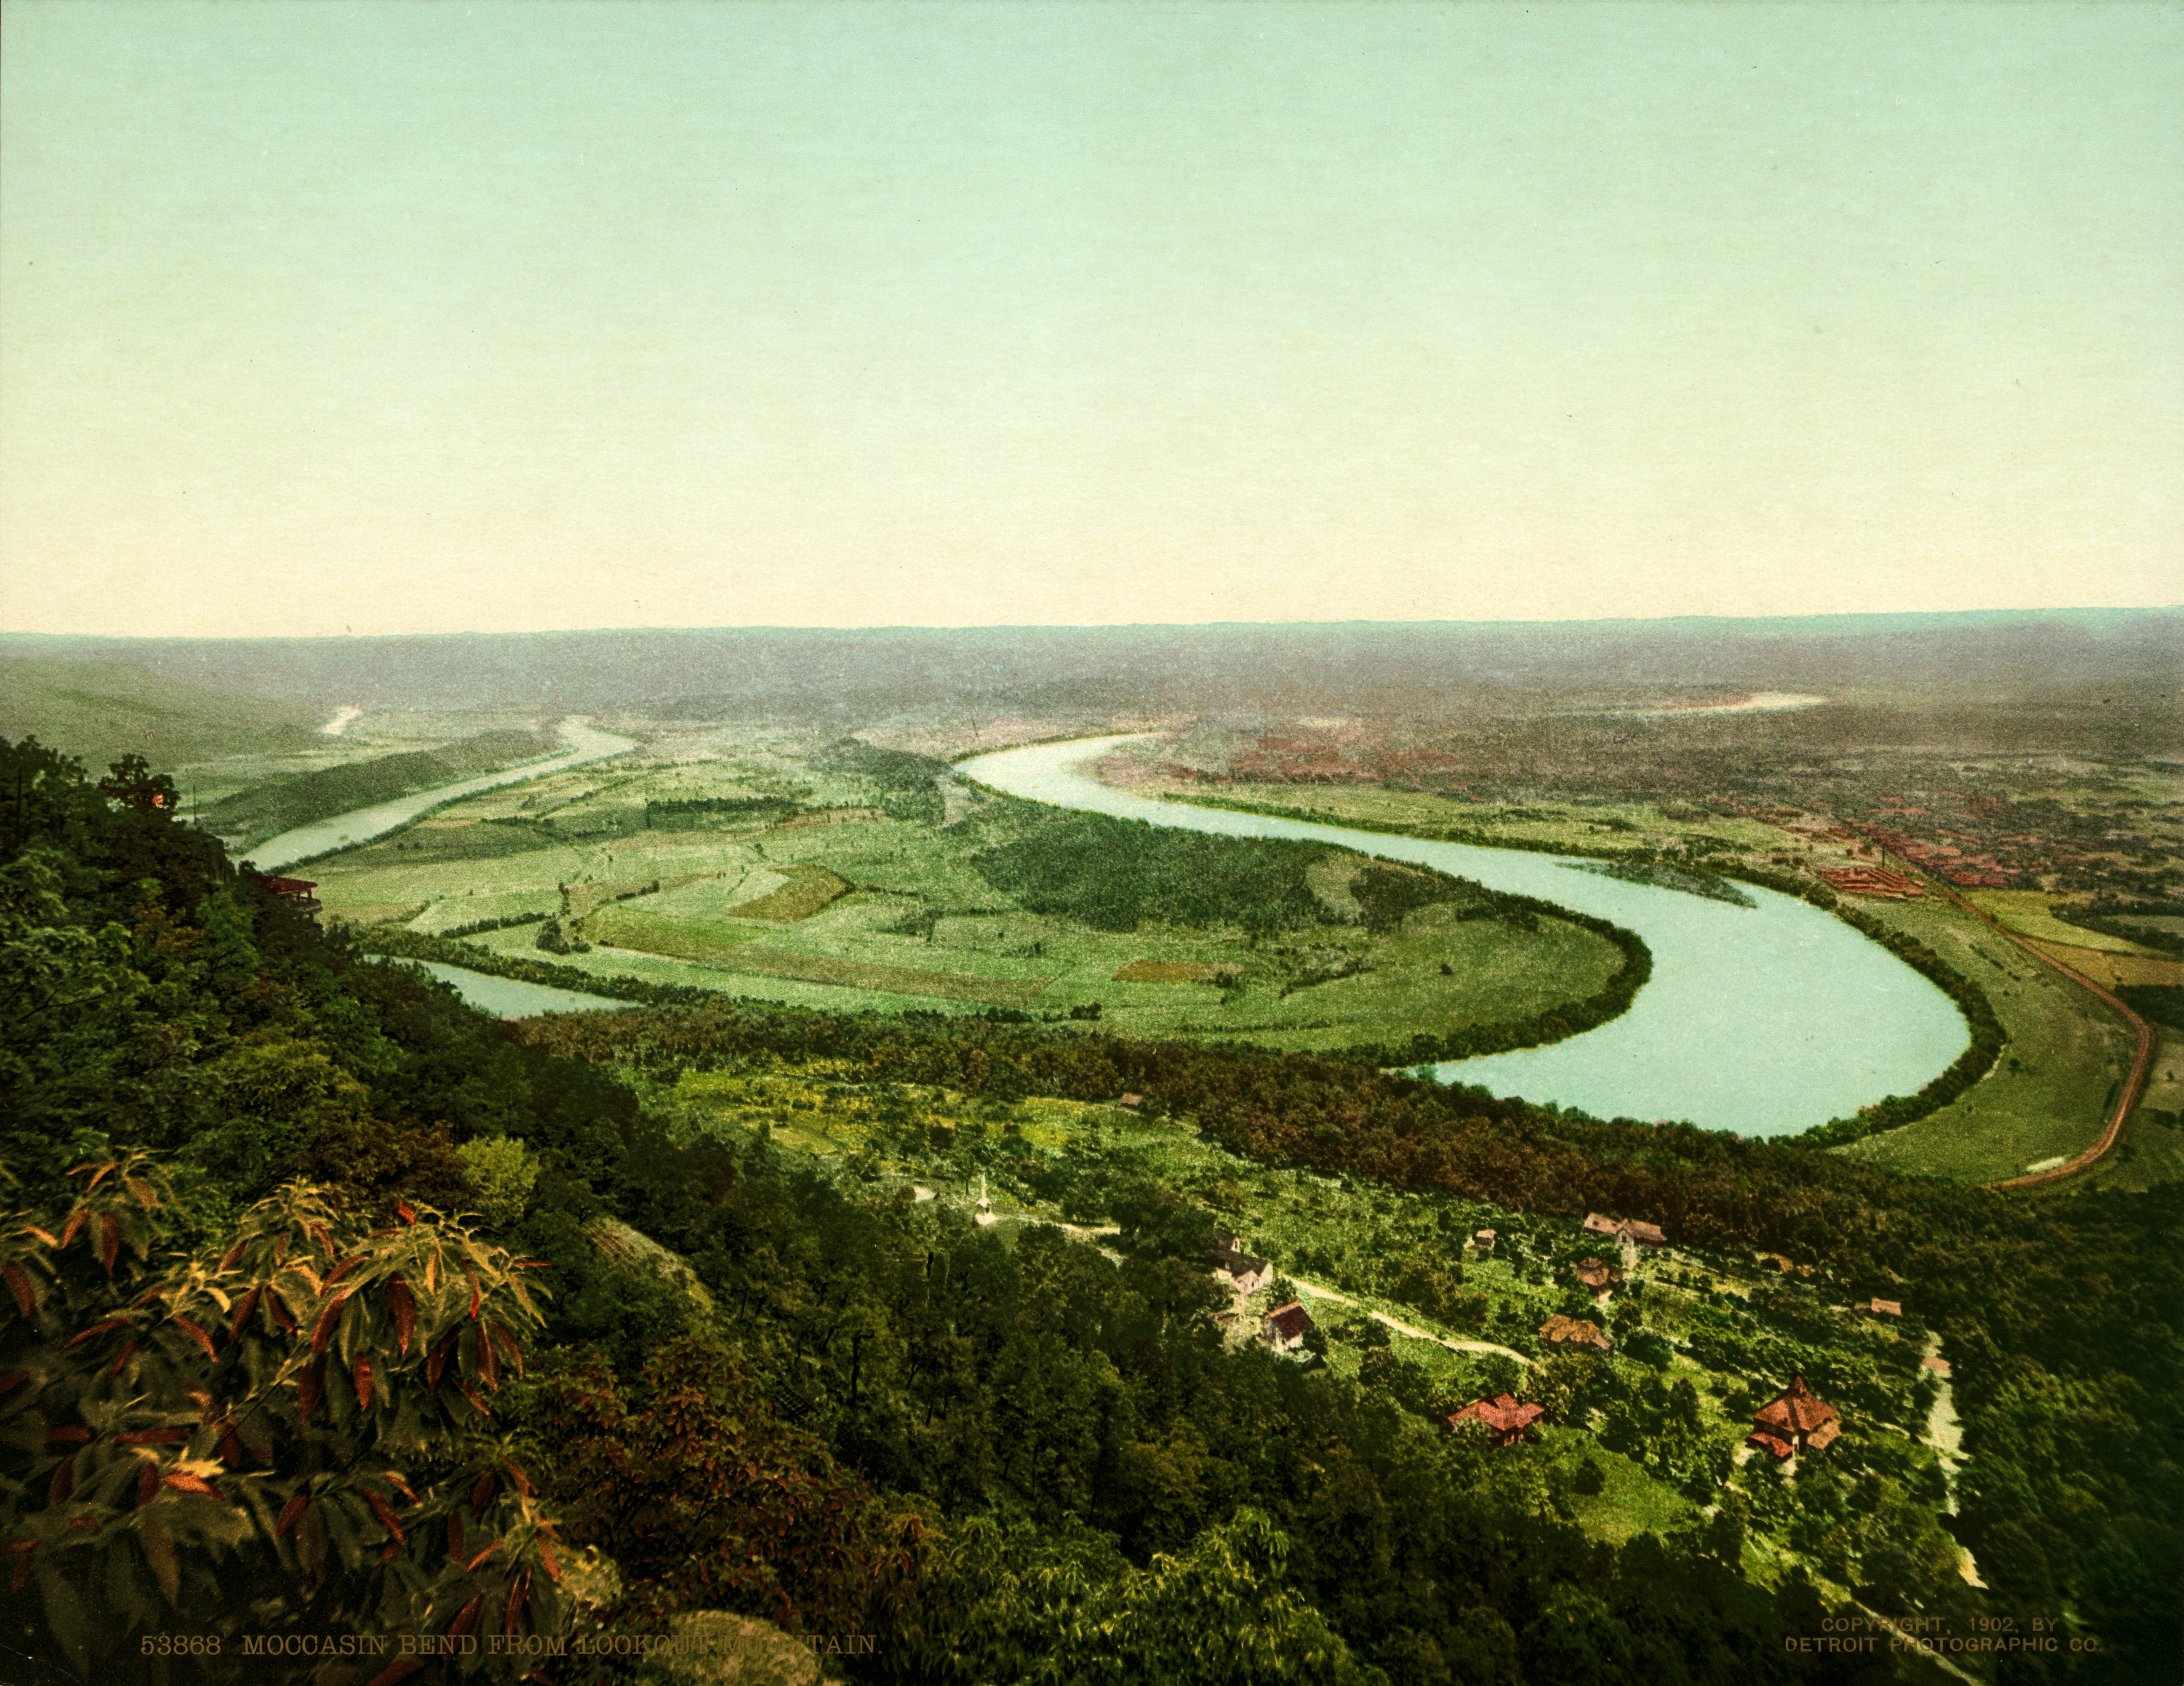 Filemoccasin bend from lookout mountain tennessee 1902g filemoccasin bend from lookout mountain tennessee 1902g sciox Gallery